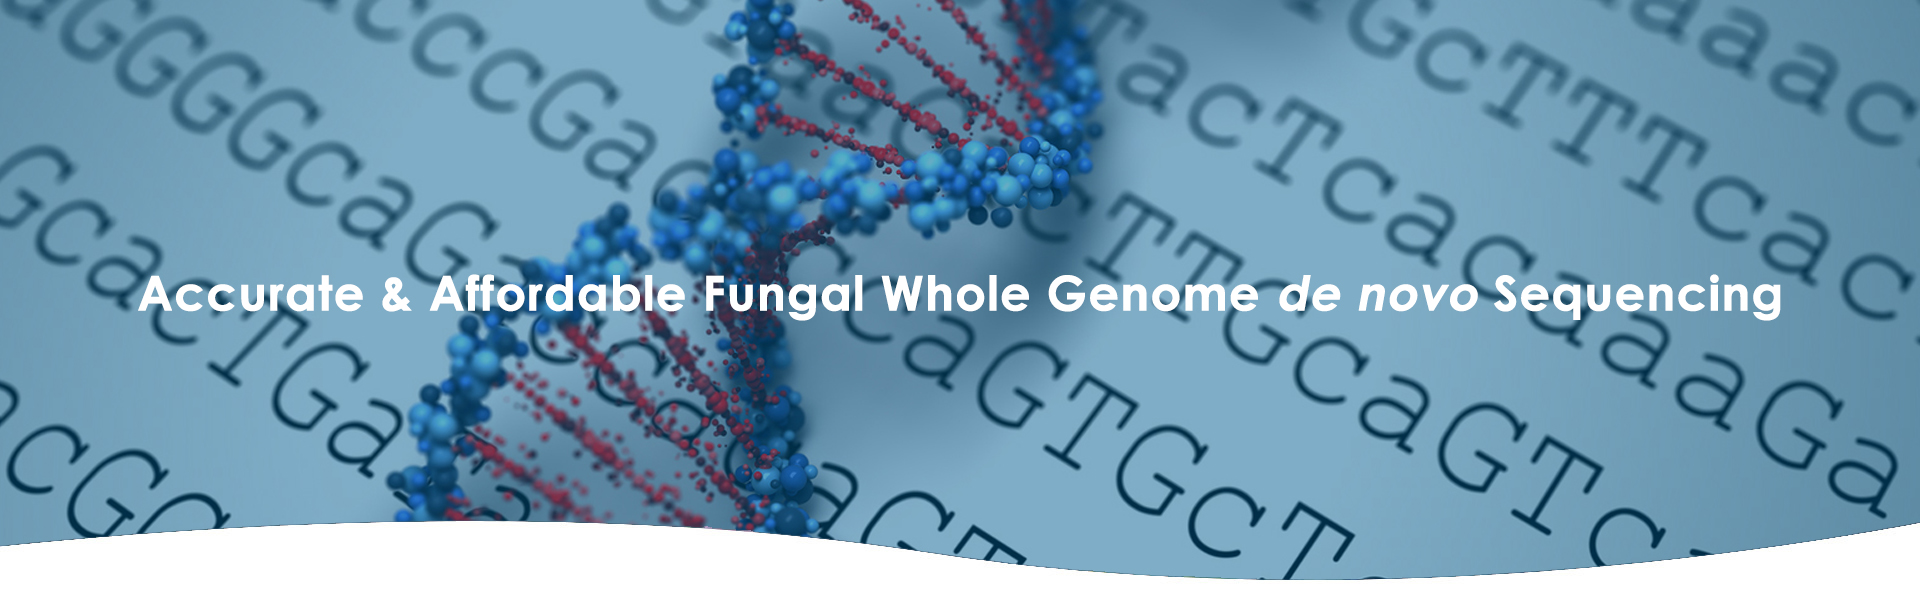 fungal genome sequencing